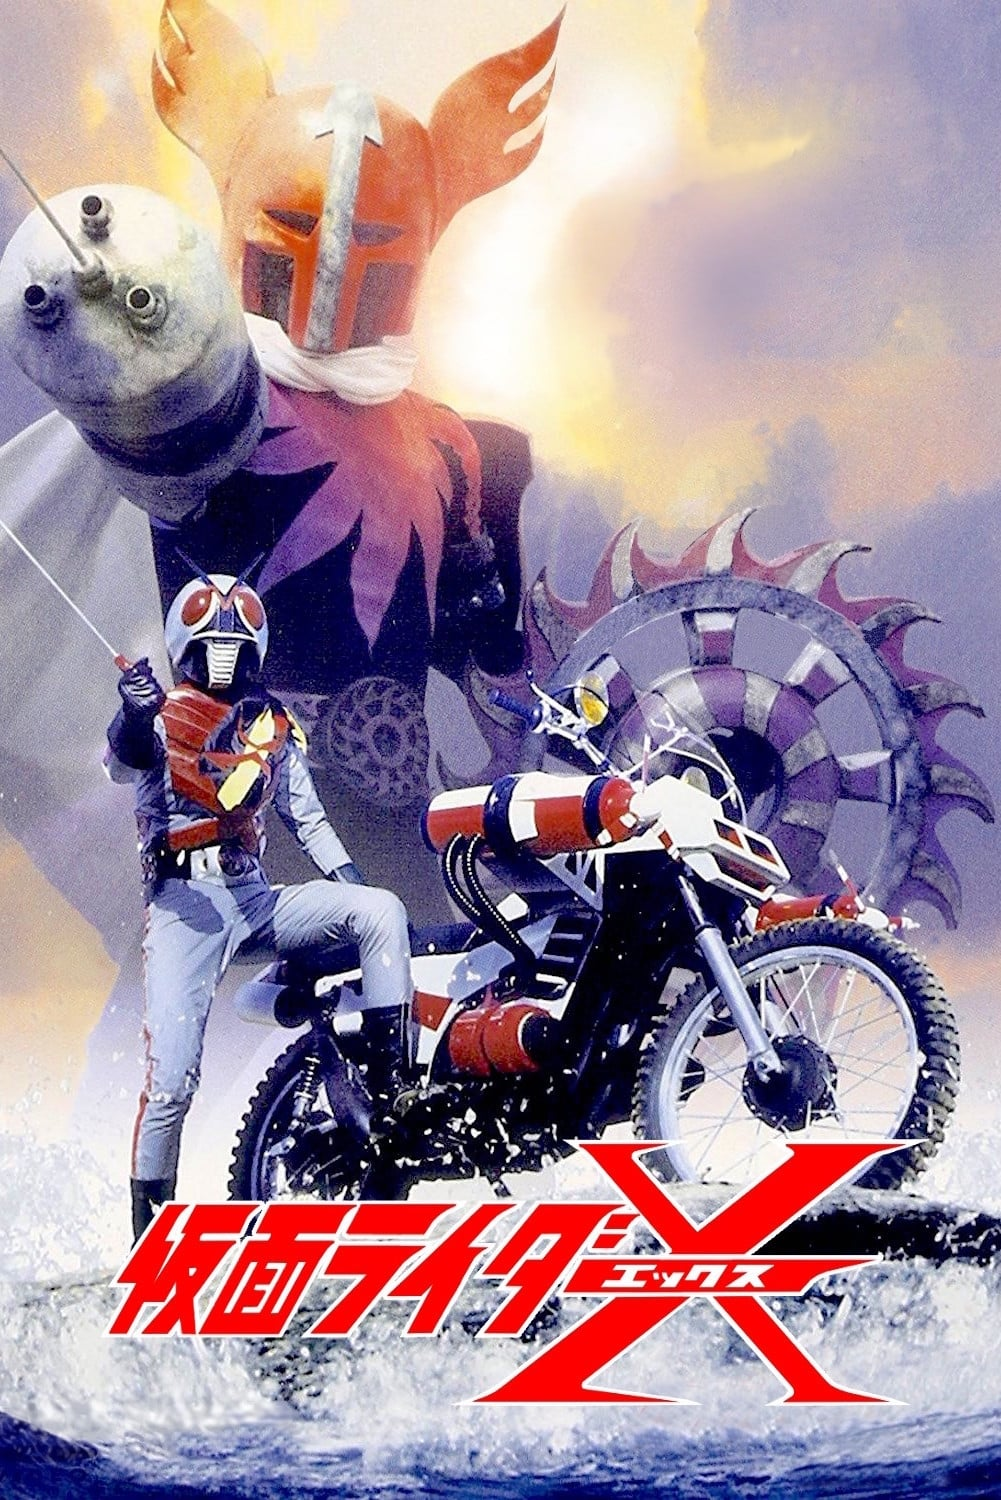 Kamen Rider - Season 21 Episode 42 : Ice, Greeed Form, Broken Wings Season 3